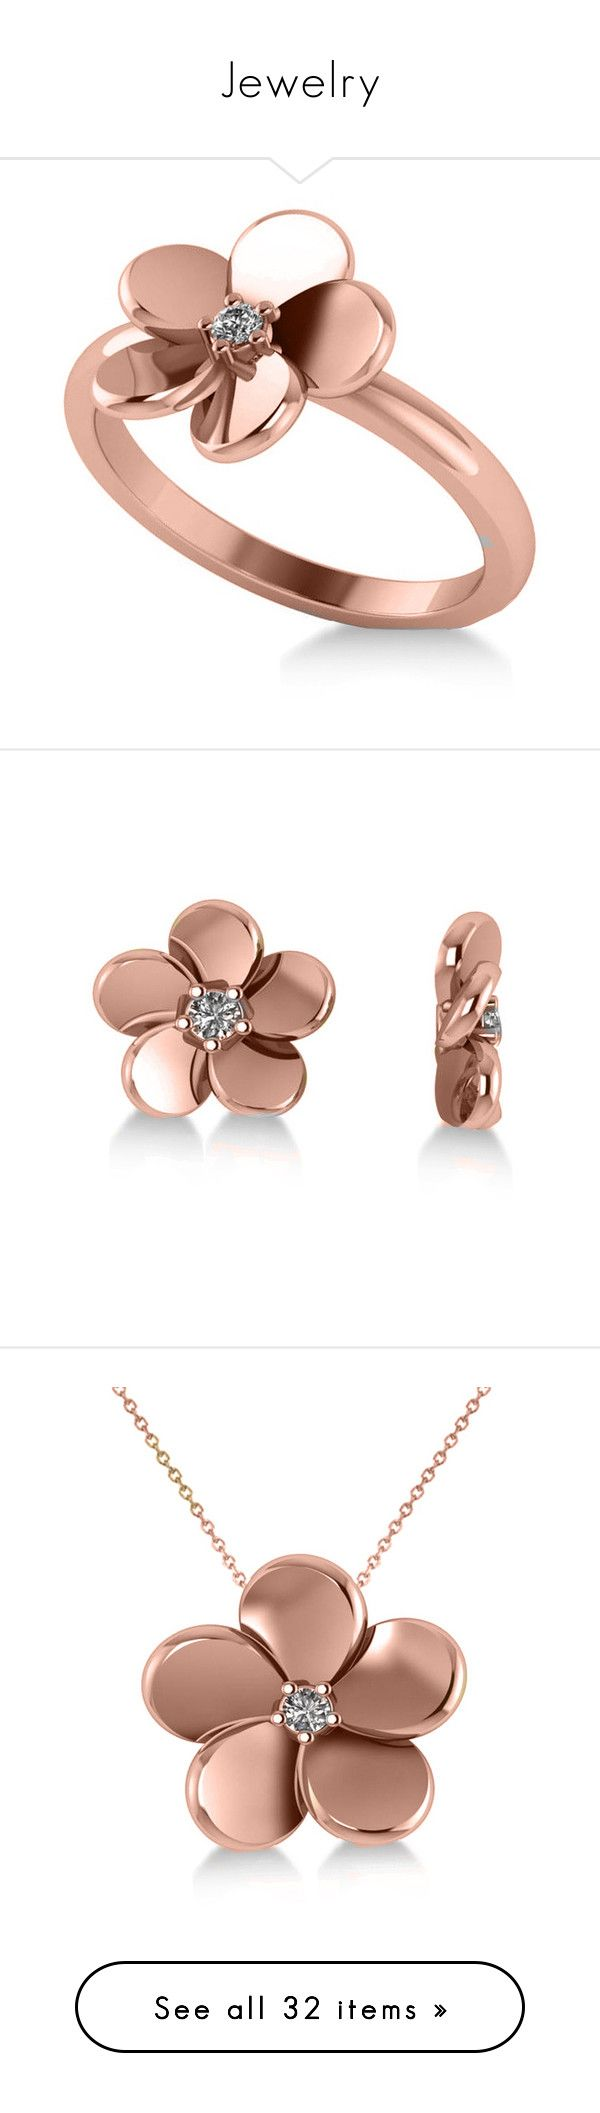 """""""Jewelry"""" by kiyiya ❤ liked on Polyvore featuring jewelry, rings, 14 karat gold ring, rose gold flower ring, solitaire ring, pink gold rings, rose gold solitaire ring, earrings, 14 karat gold earrings and rose gold jewelry"""